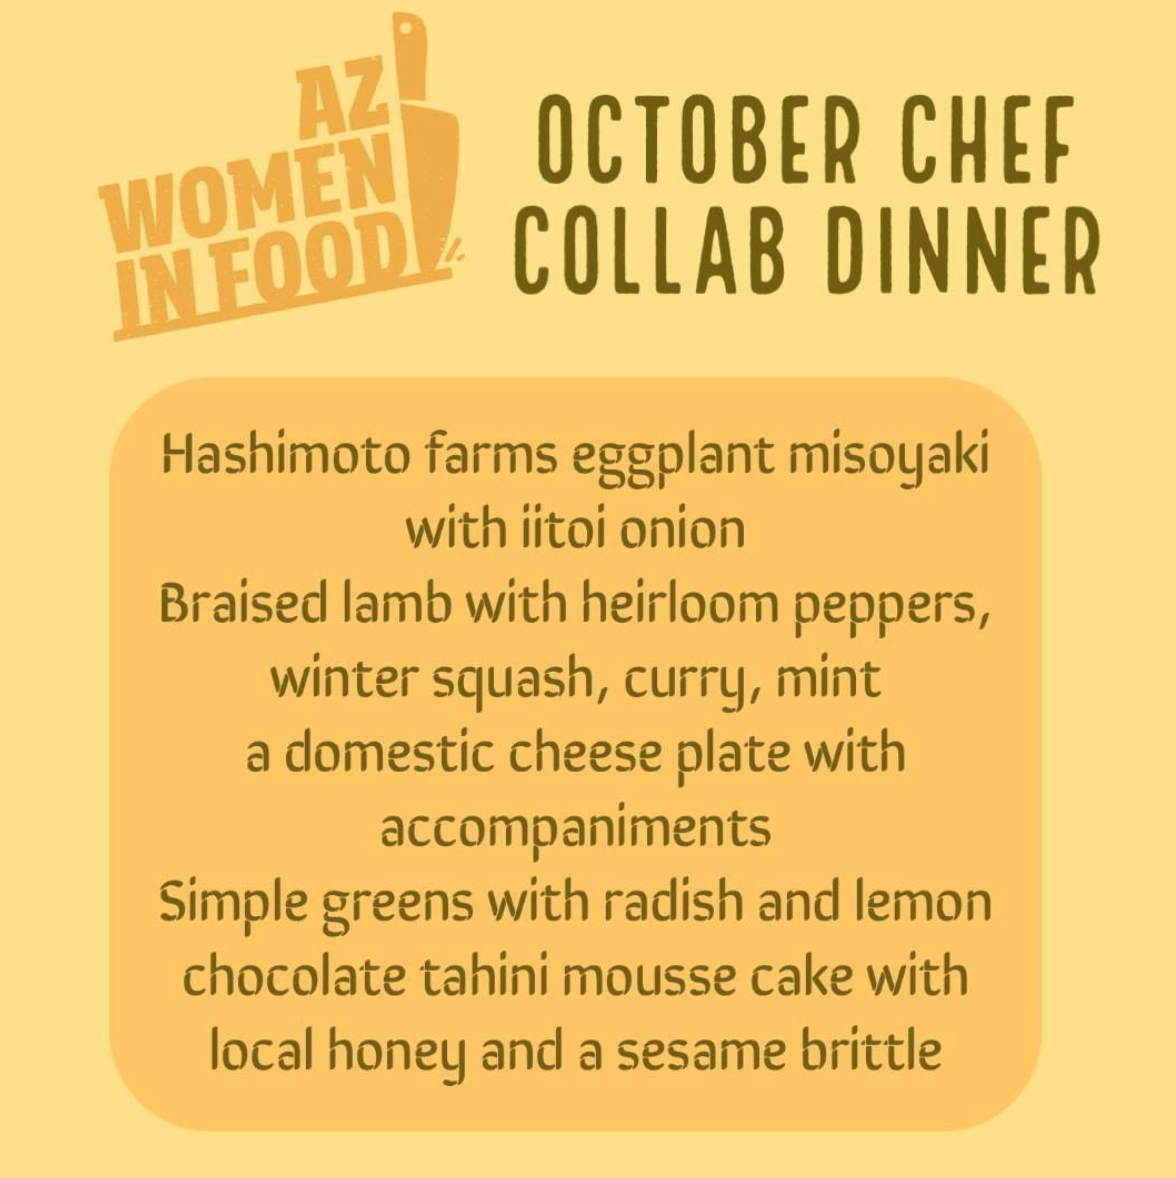 AZ Women in Food October Chef Collab Dinners